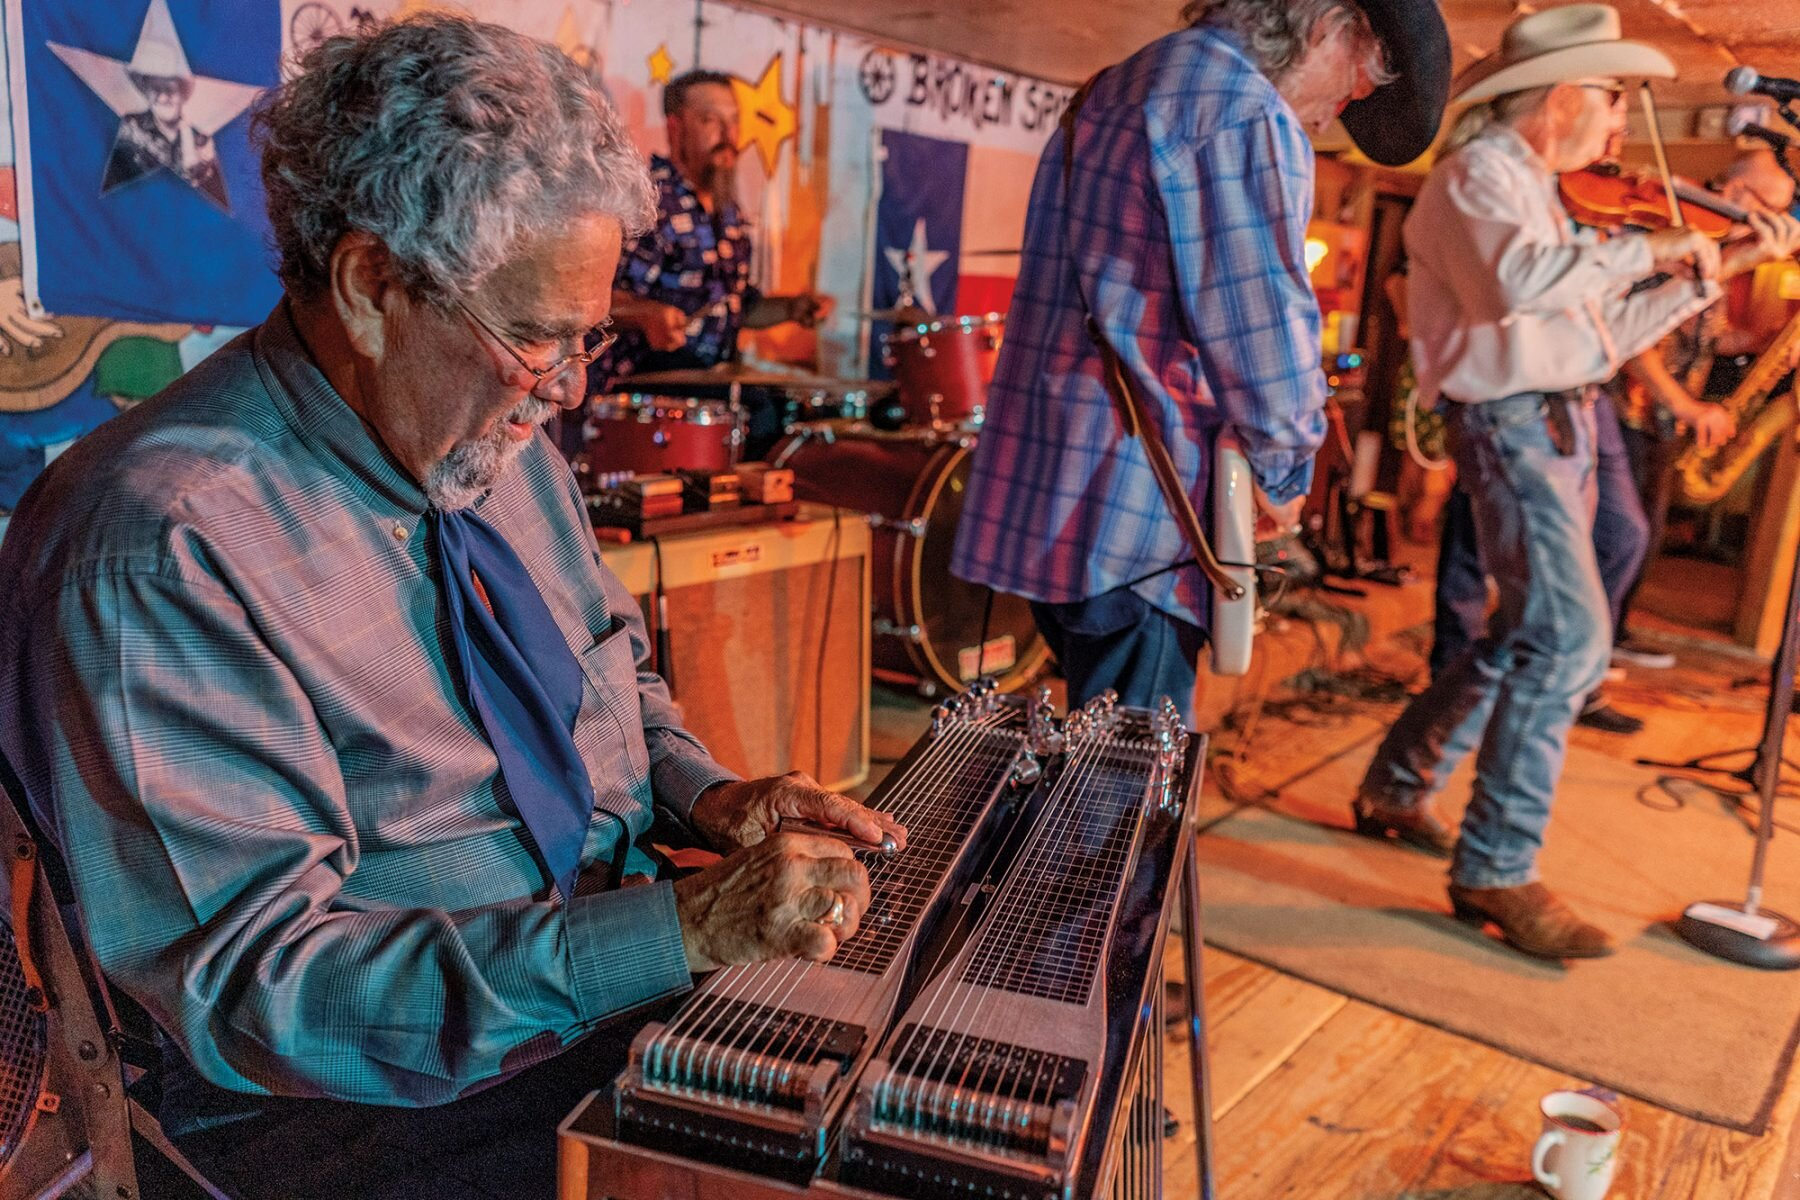 Alvin Crow and the Pleasant Valley Boys are among bands keeping Western swing music alive at venues like the Broken Spoke in Austin. Photo: Will van Overbeek